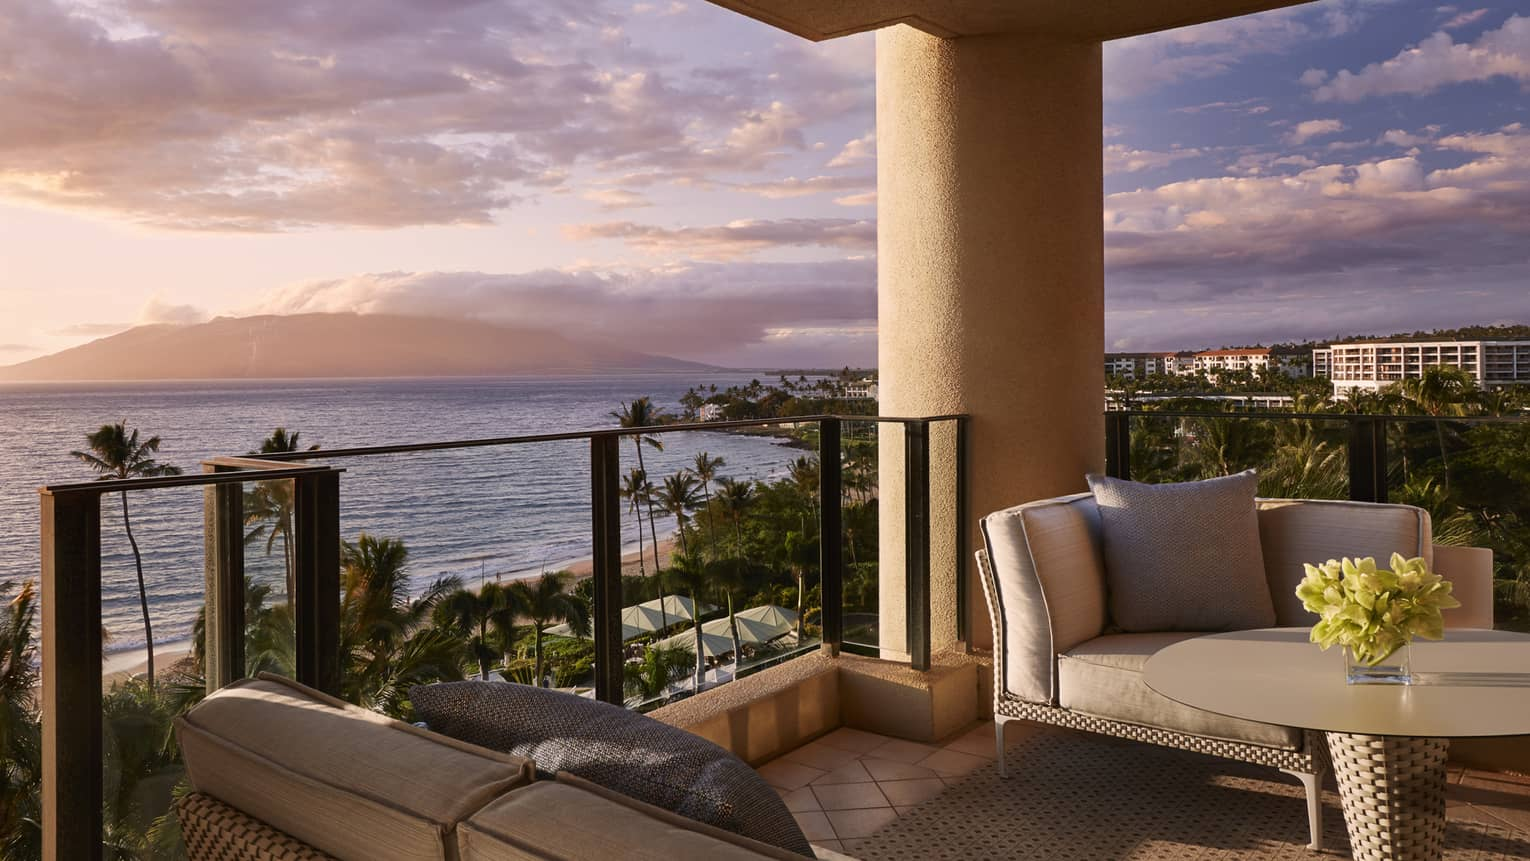 Balcony with wicker patio furniture, brown cushions in front of ocean view at sunset